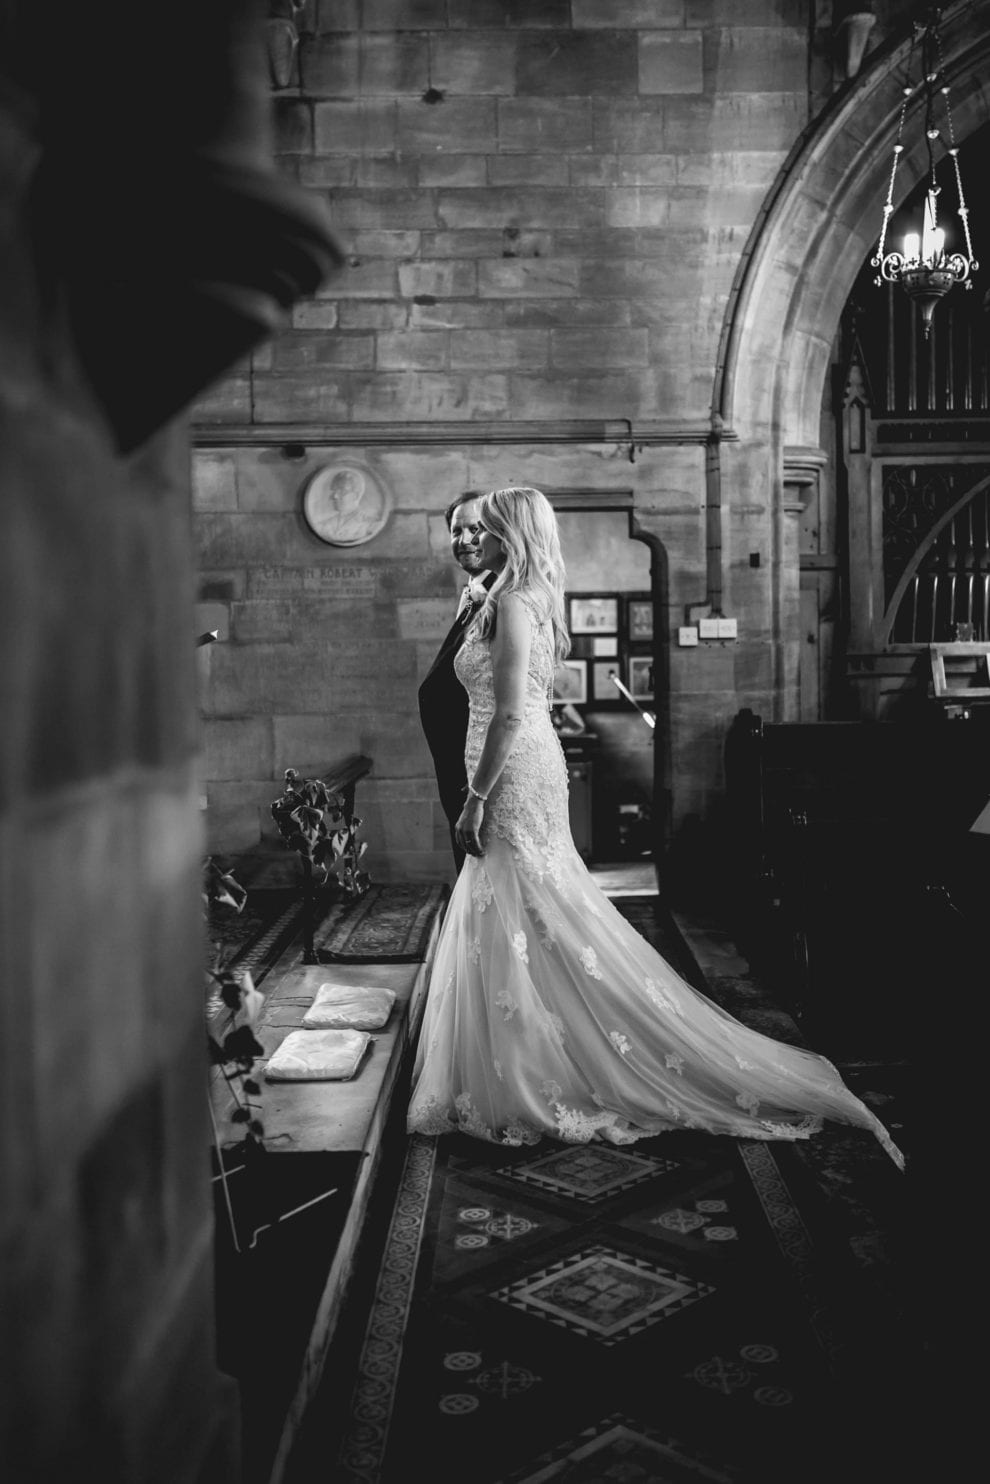 Best Wedding Photography 2016 - London and the South East Weddings (116)